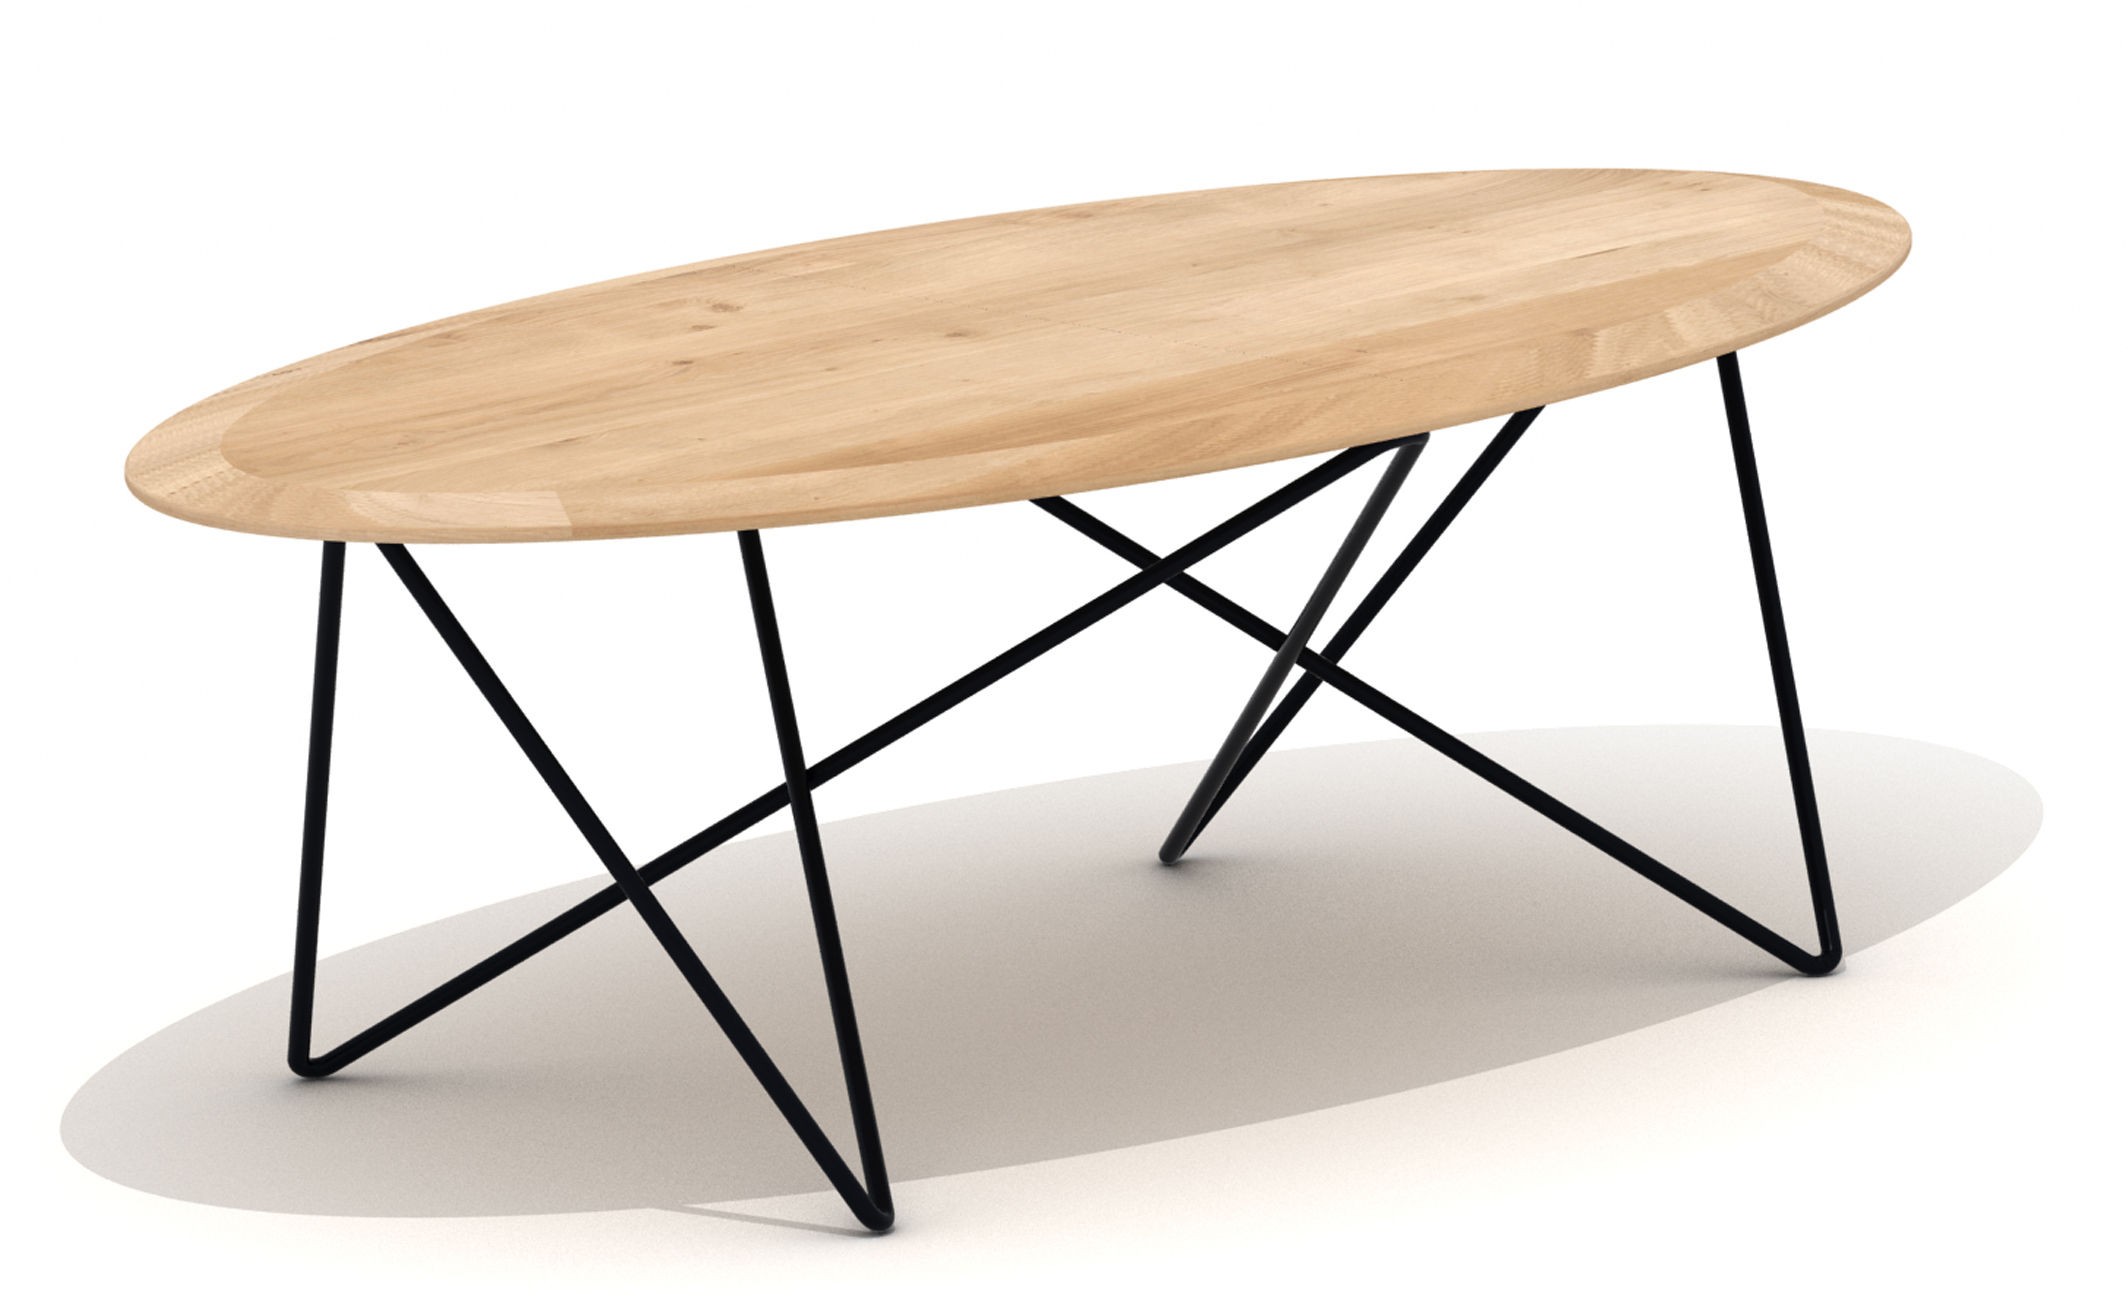 Orb coffee table l 130 cm natural wood black leg by - Table basse manger transformable ...